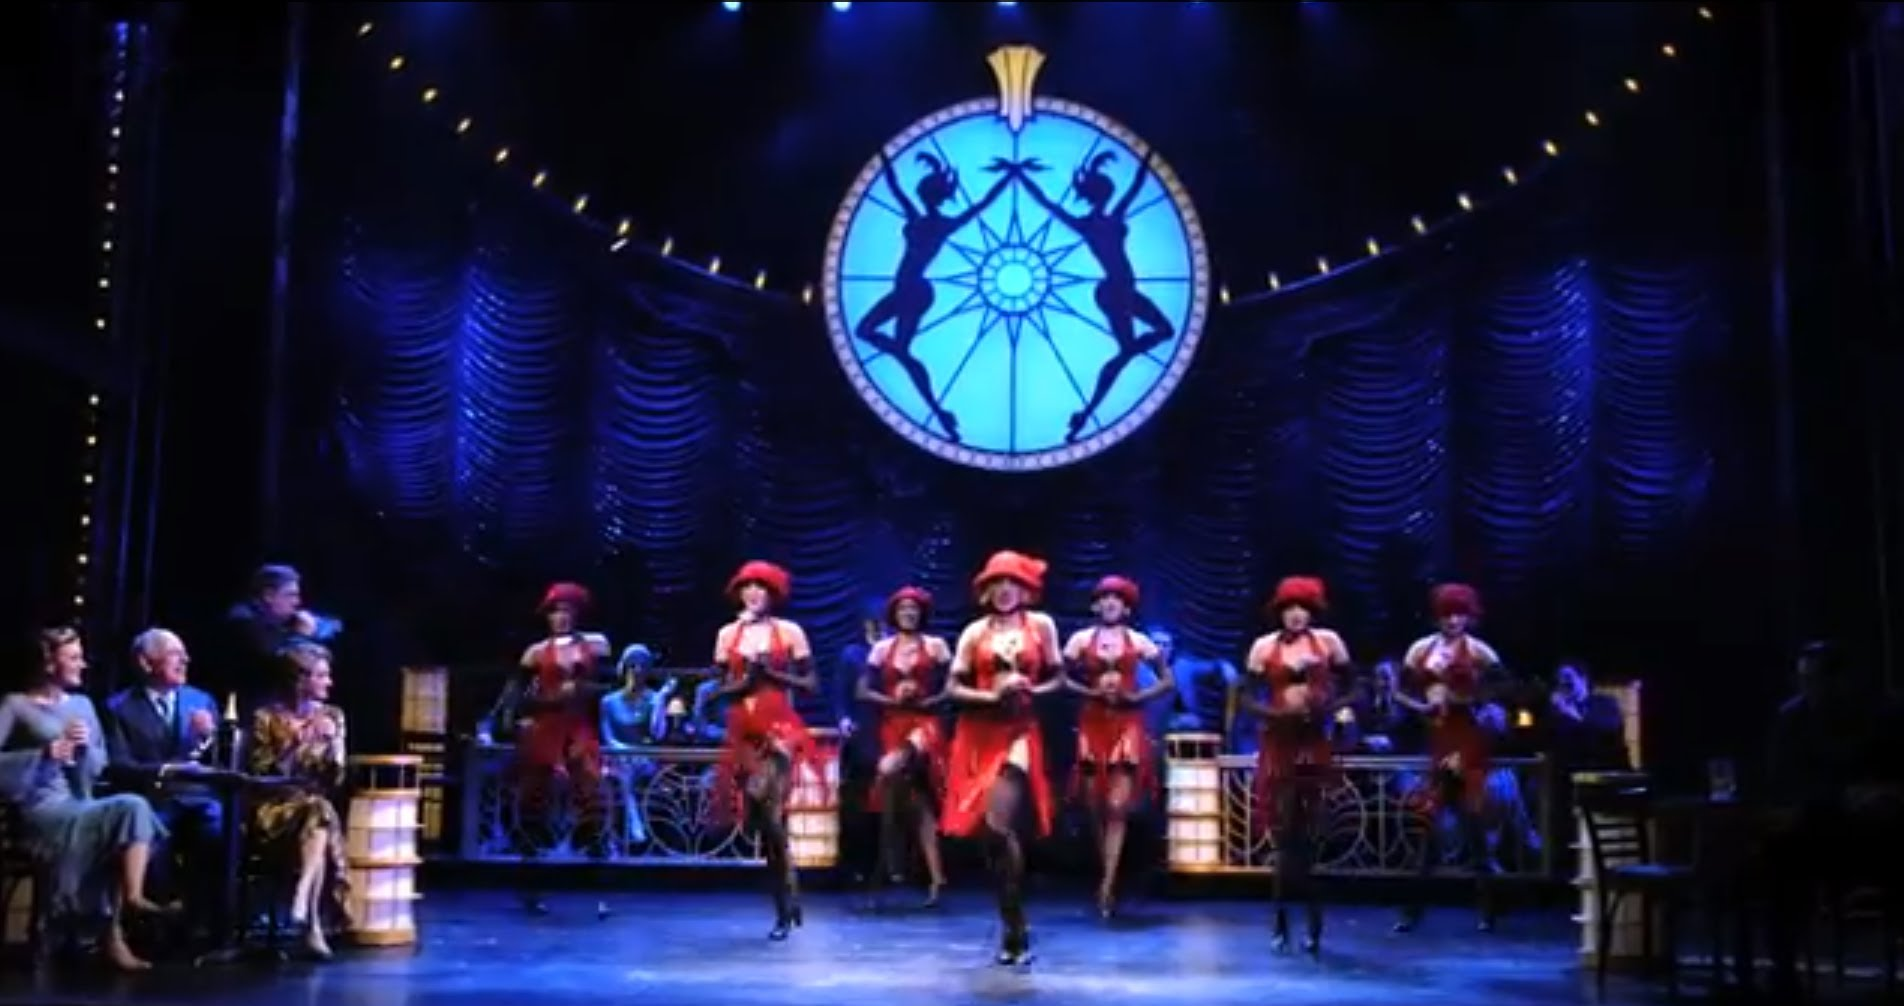 Watch scenes from BULLETS OVER BROADWAY, in performances at the St. James Theatre on...